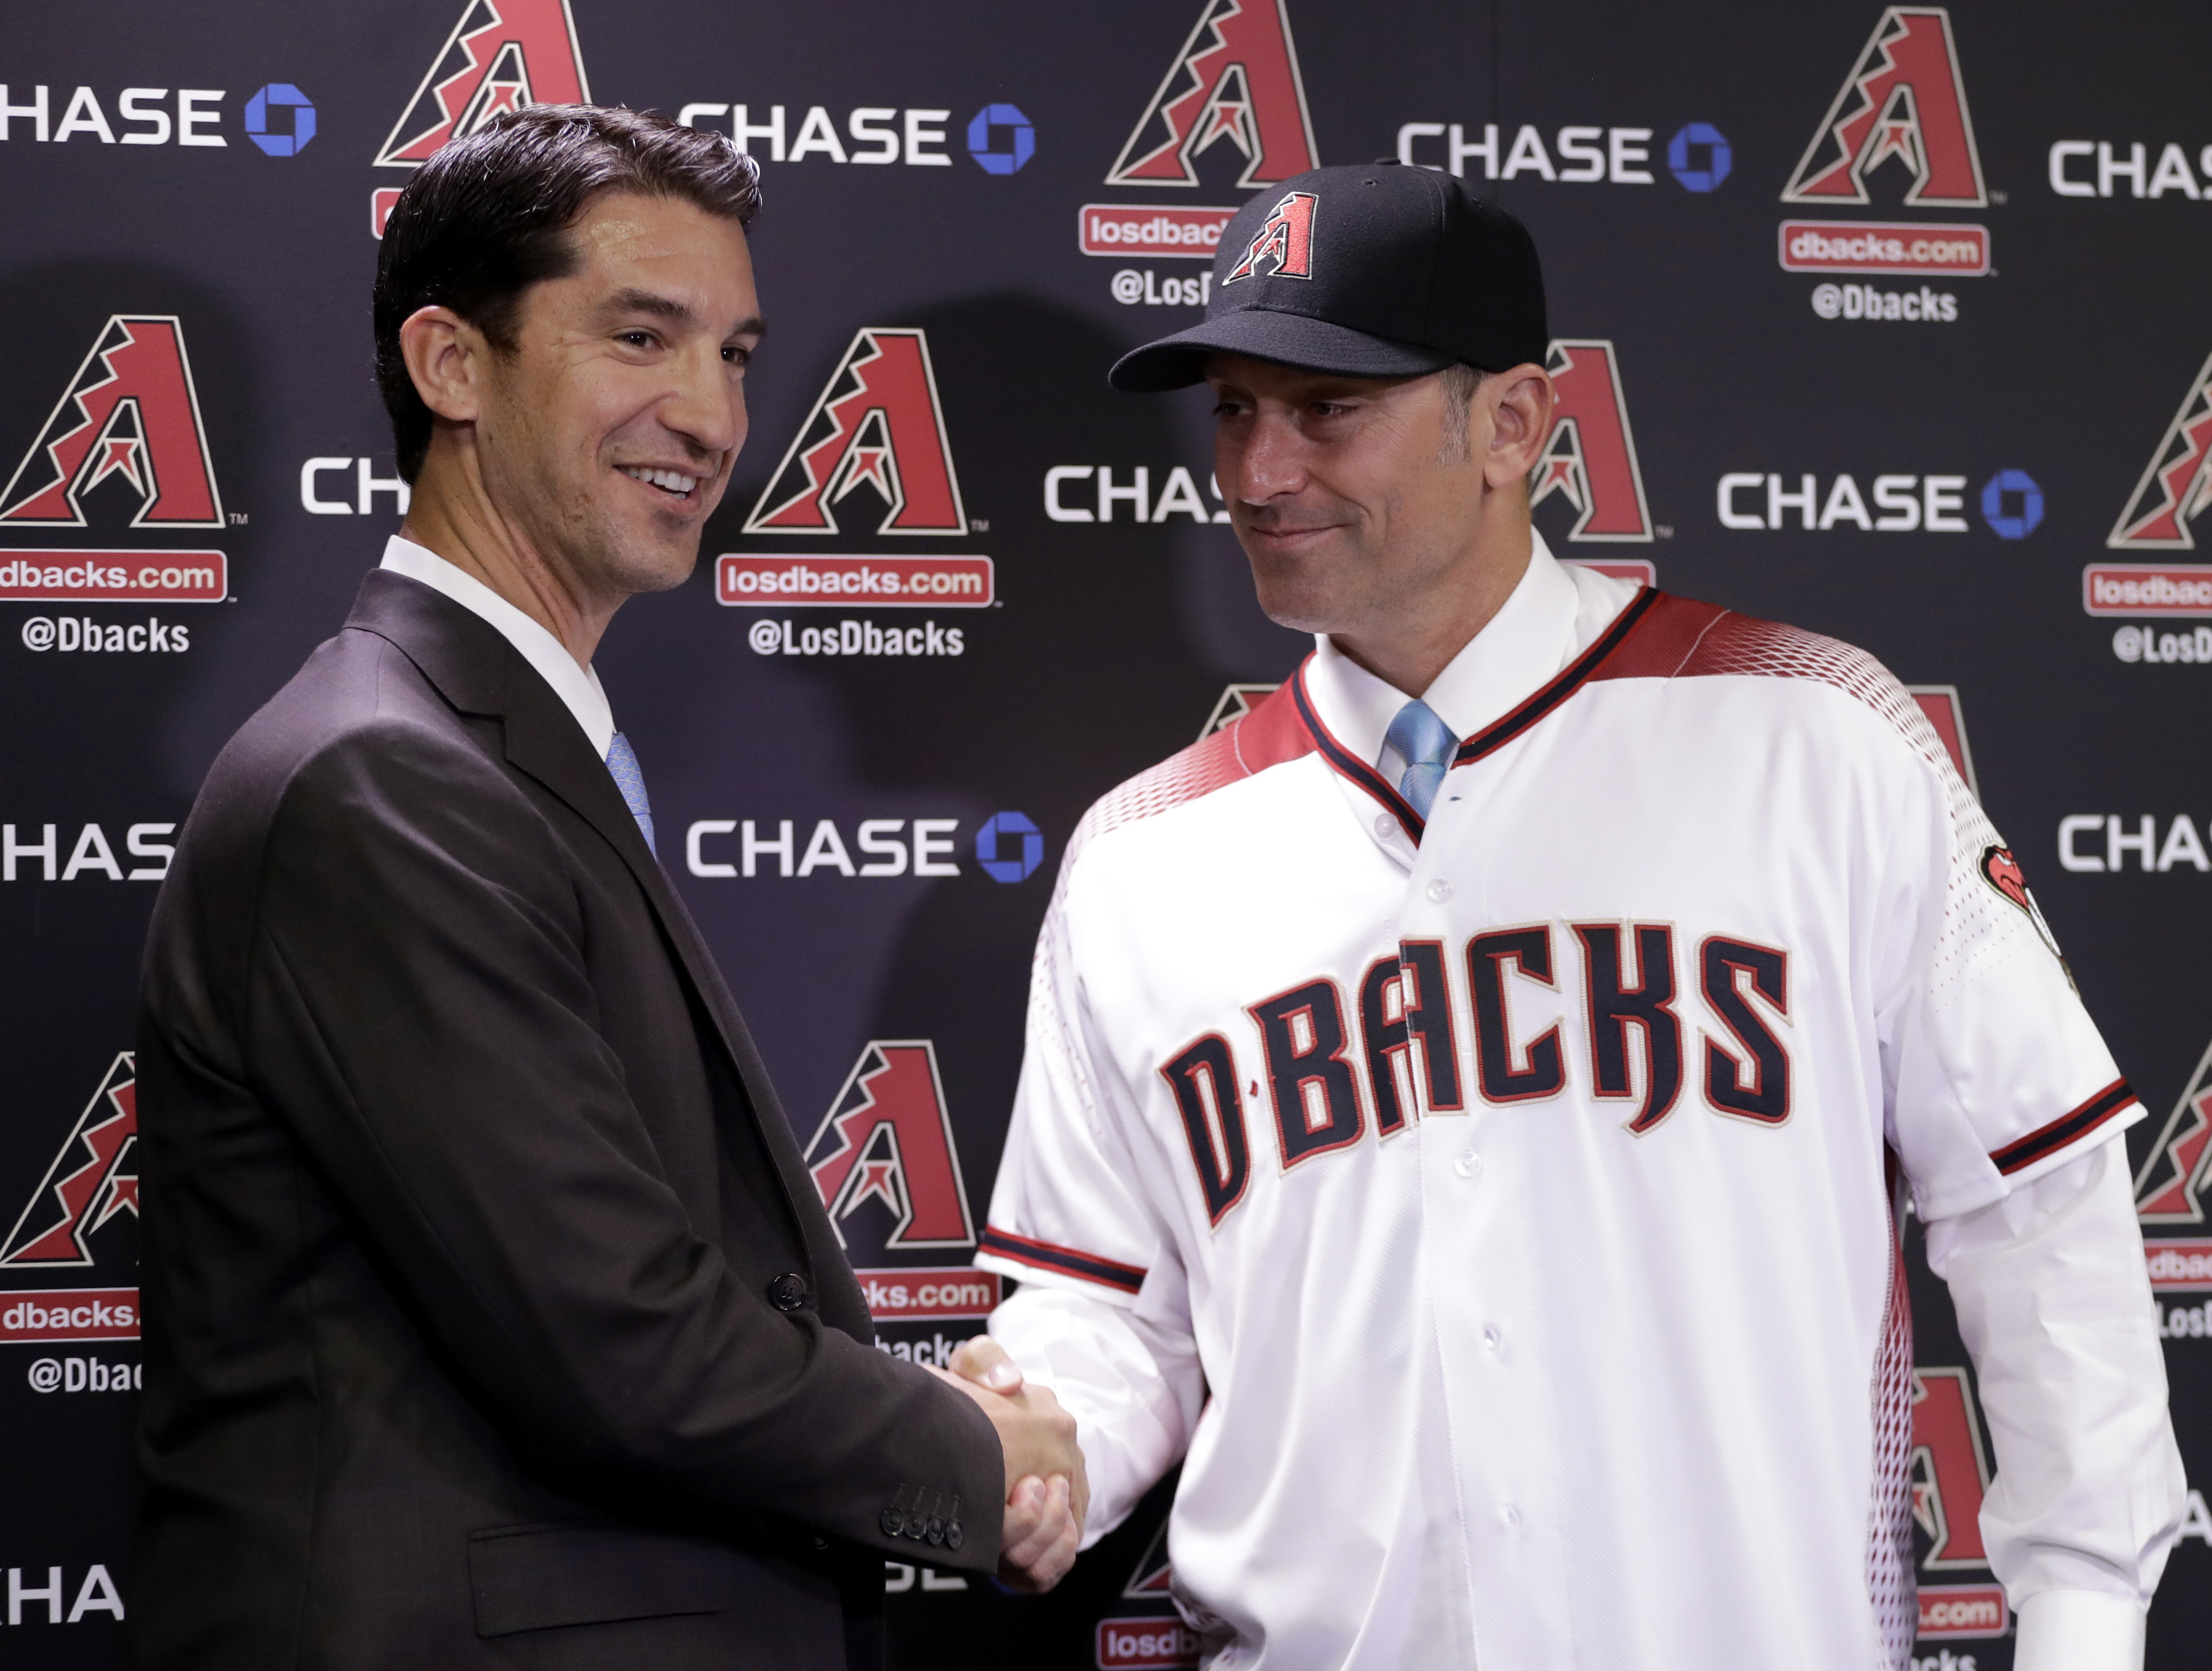 New Arizona Diamondbacks manager Torey Lovullo, right, is greeted by Diamondbacks' Executive Vice President and General Manager Mike Hazenor during an introductory press conference Monday, Nov. 7, 2016, at Chase Field in Phoenix. (AP Photo/Matt York)